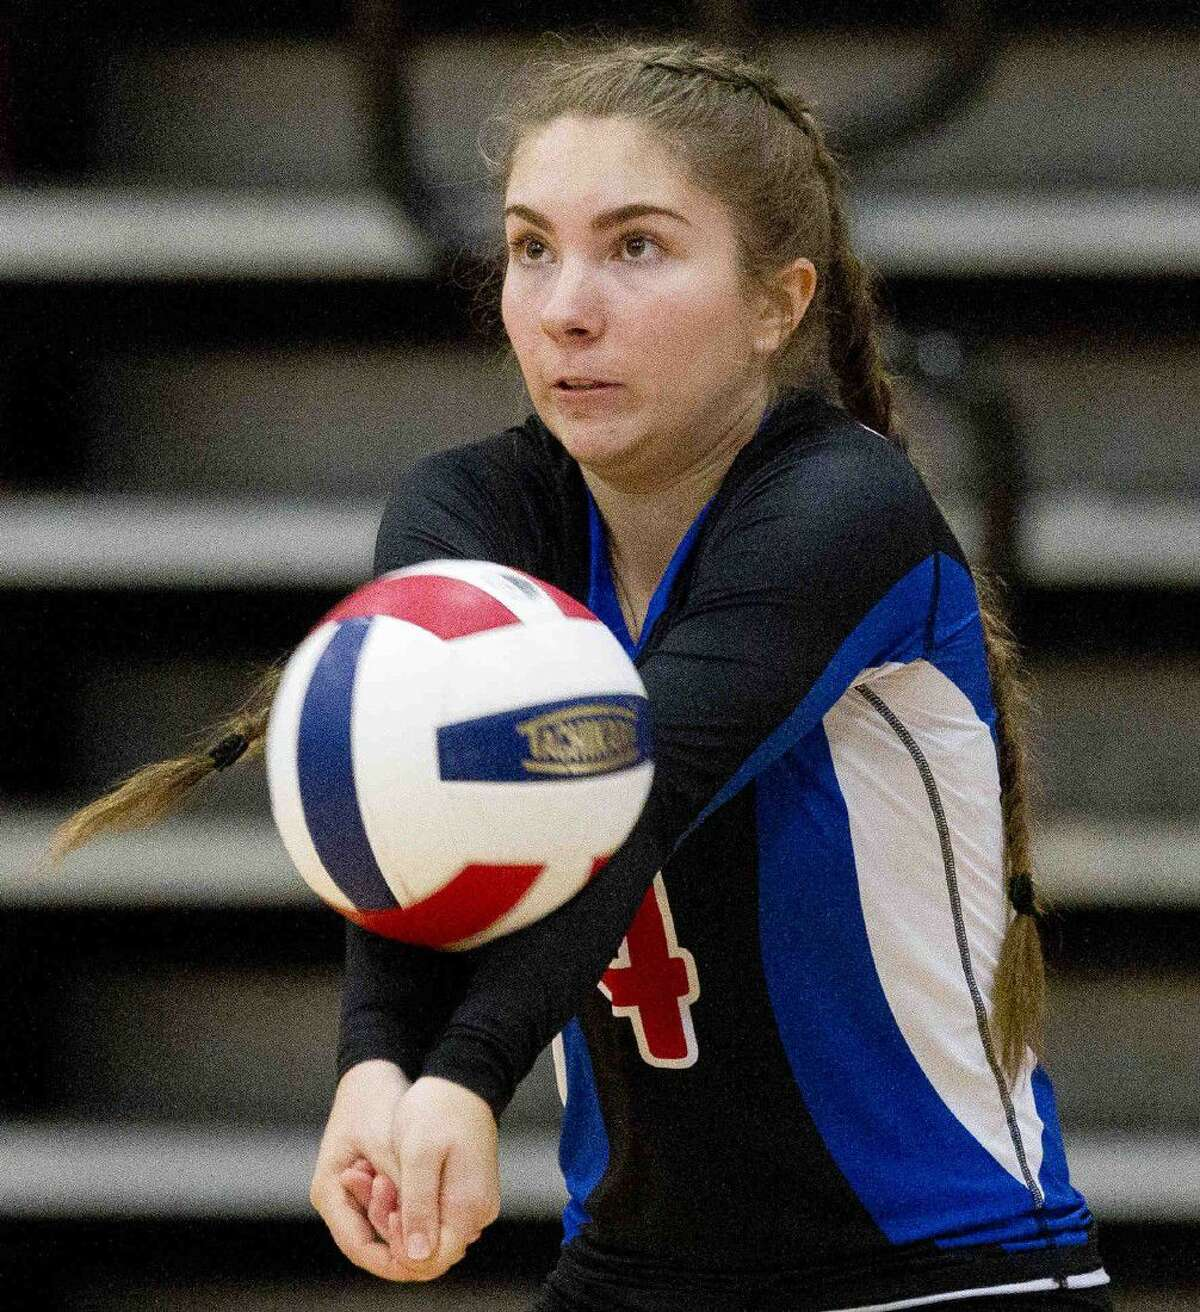 Oak Ridge's Ashlyn Cianciulli returns a serve during a match agaisnt Cypress Ranch at the Magnolia Volley-Battle tournament Friday at Magnolia High School. Go to HCNpics.com to purchase this photo and other like it.